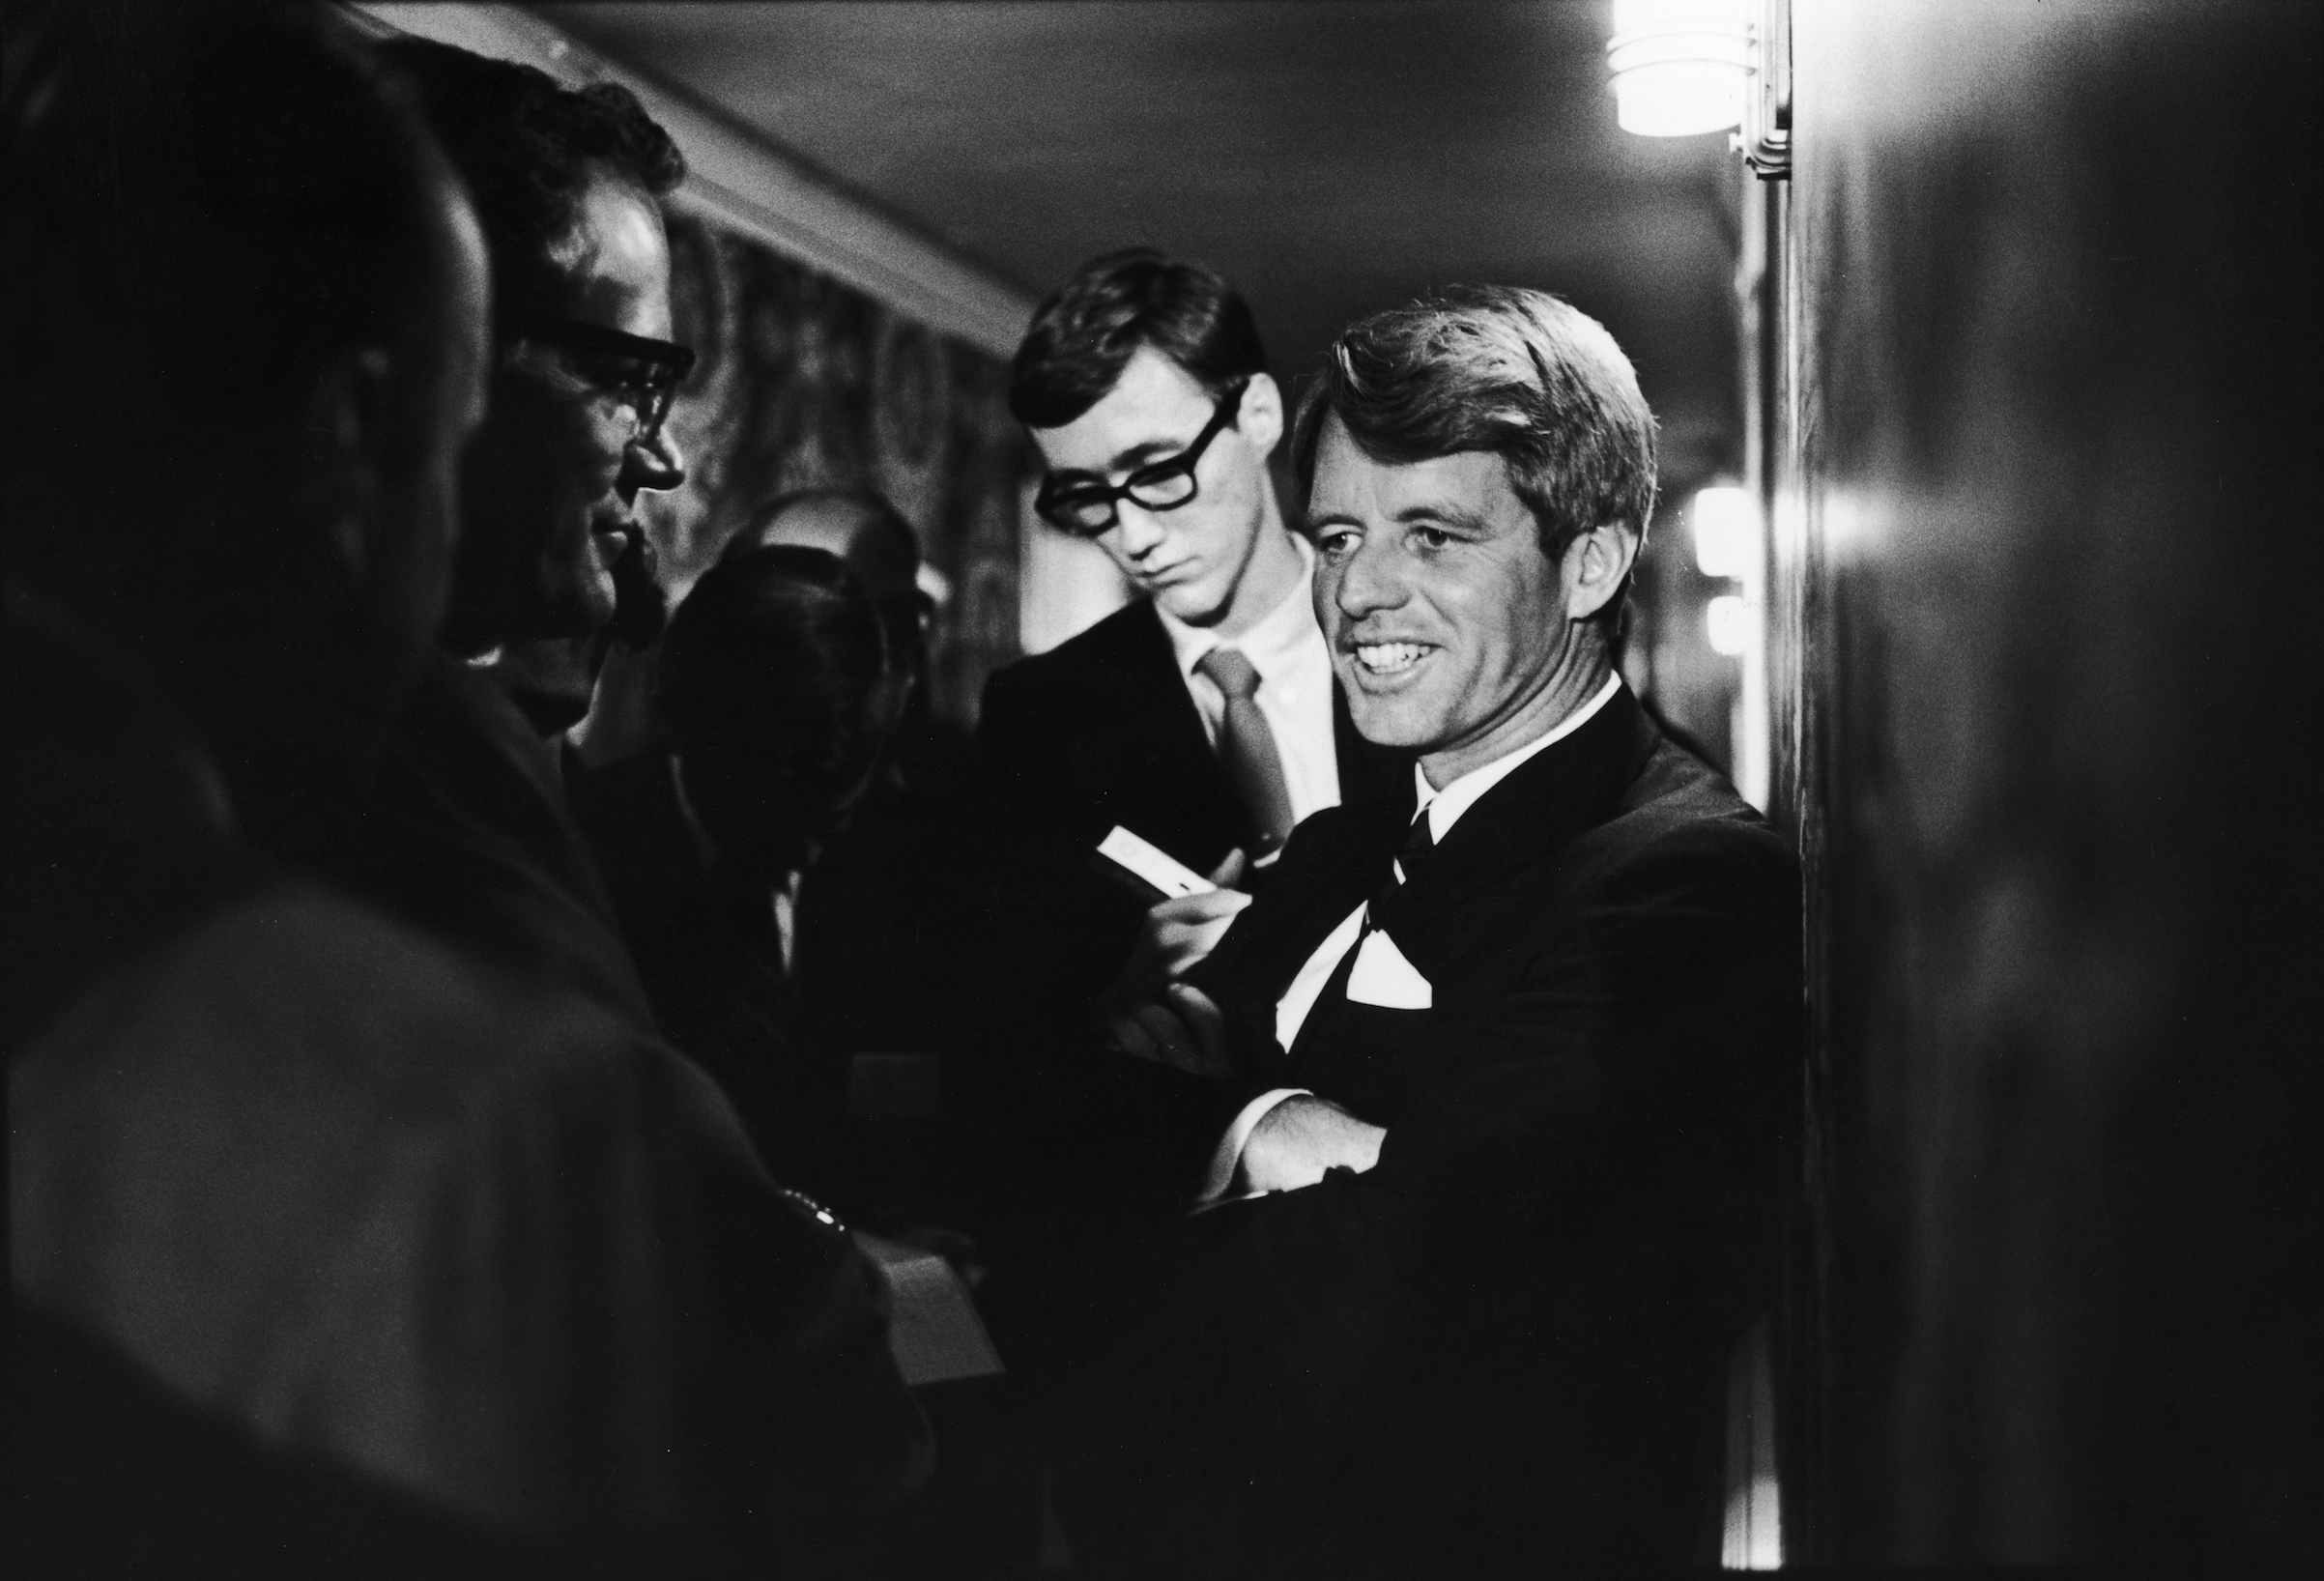 Robert Kennedy chats with reporters prior to his assassination at the Ambassador Hotel. Los Angeles, June 5, 1968